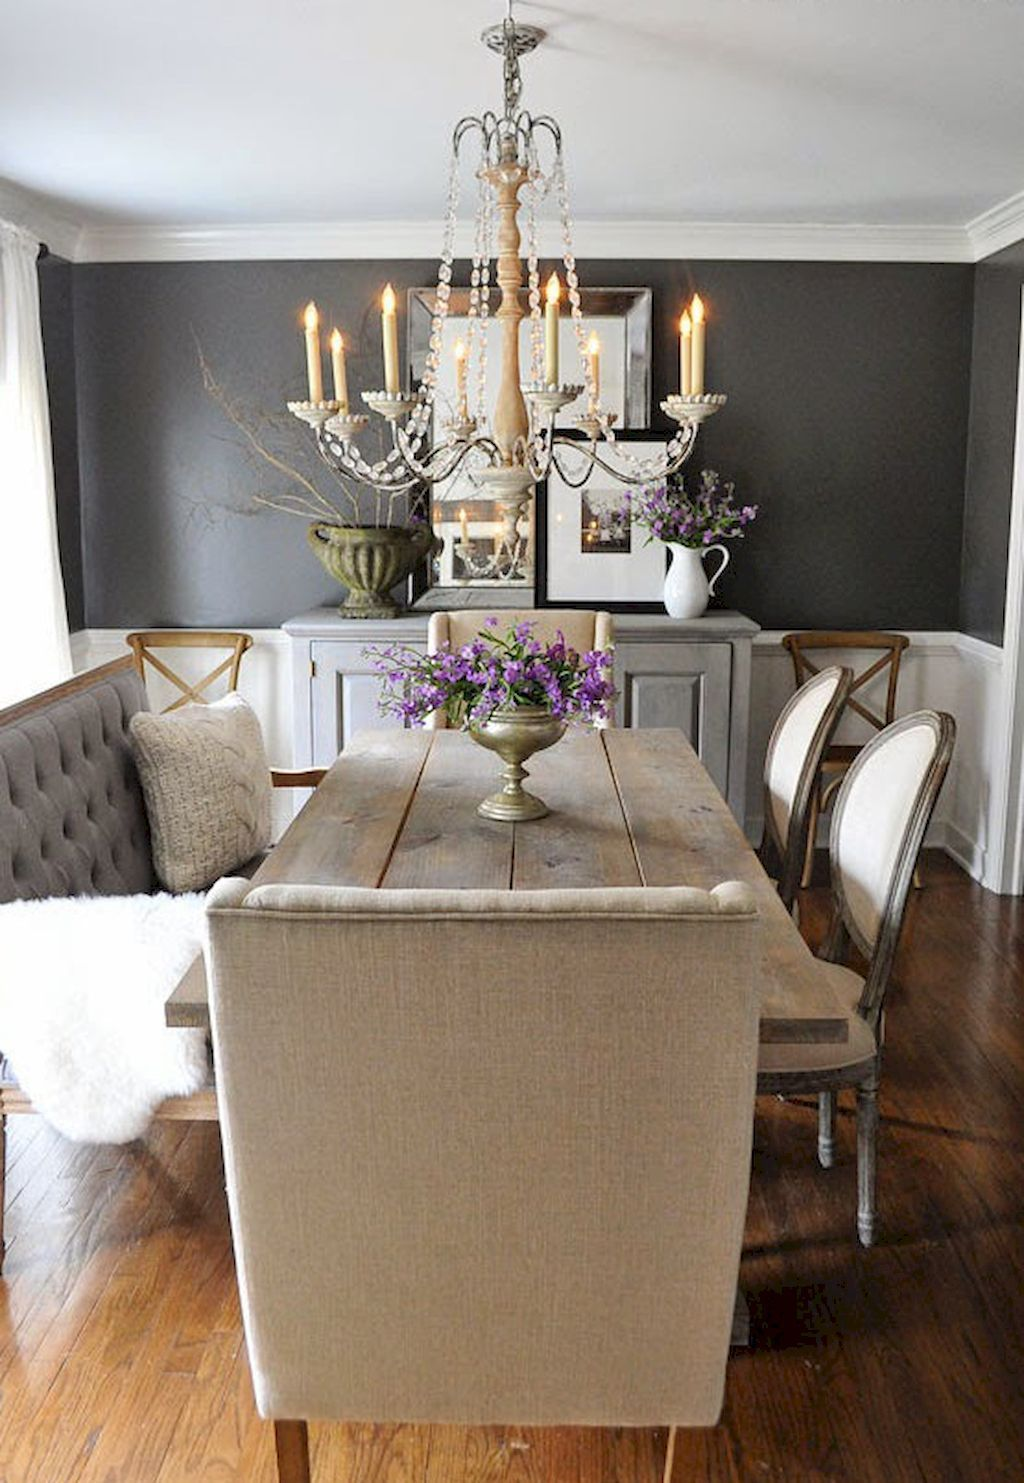 Sitting Room And Dining Room Designs: Explore Our List Of Popular Small Living Room Ideas And